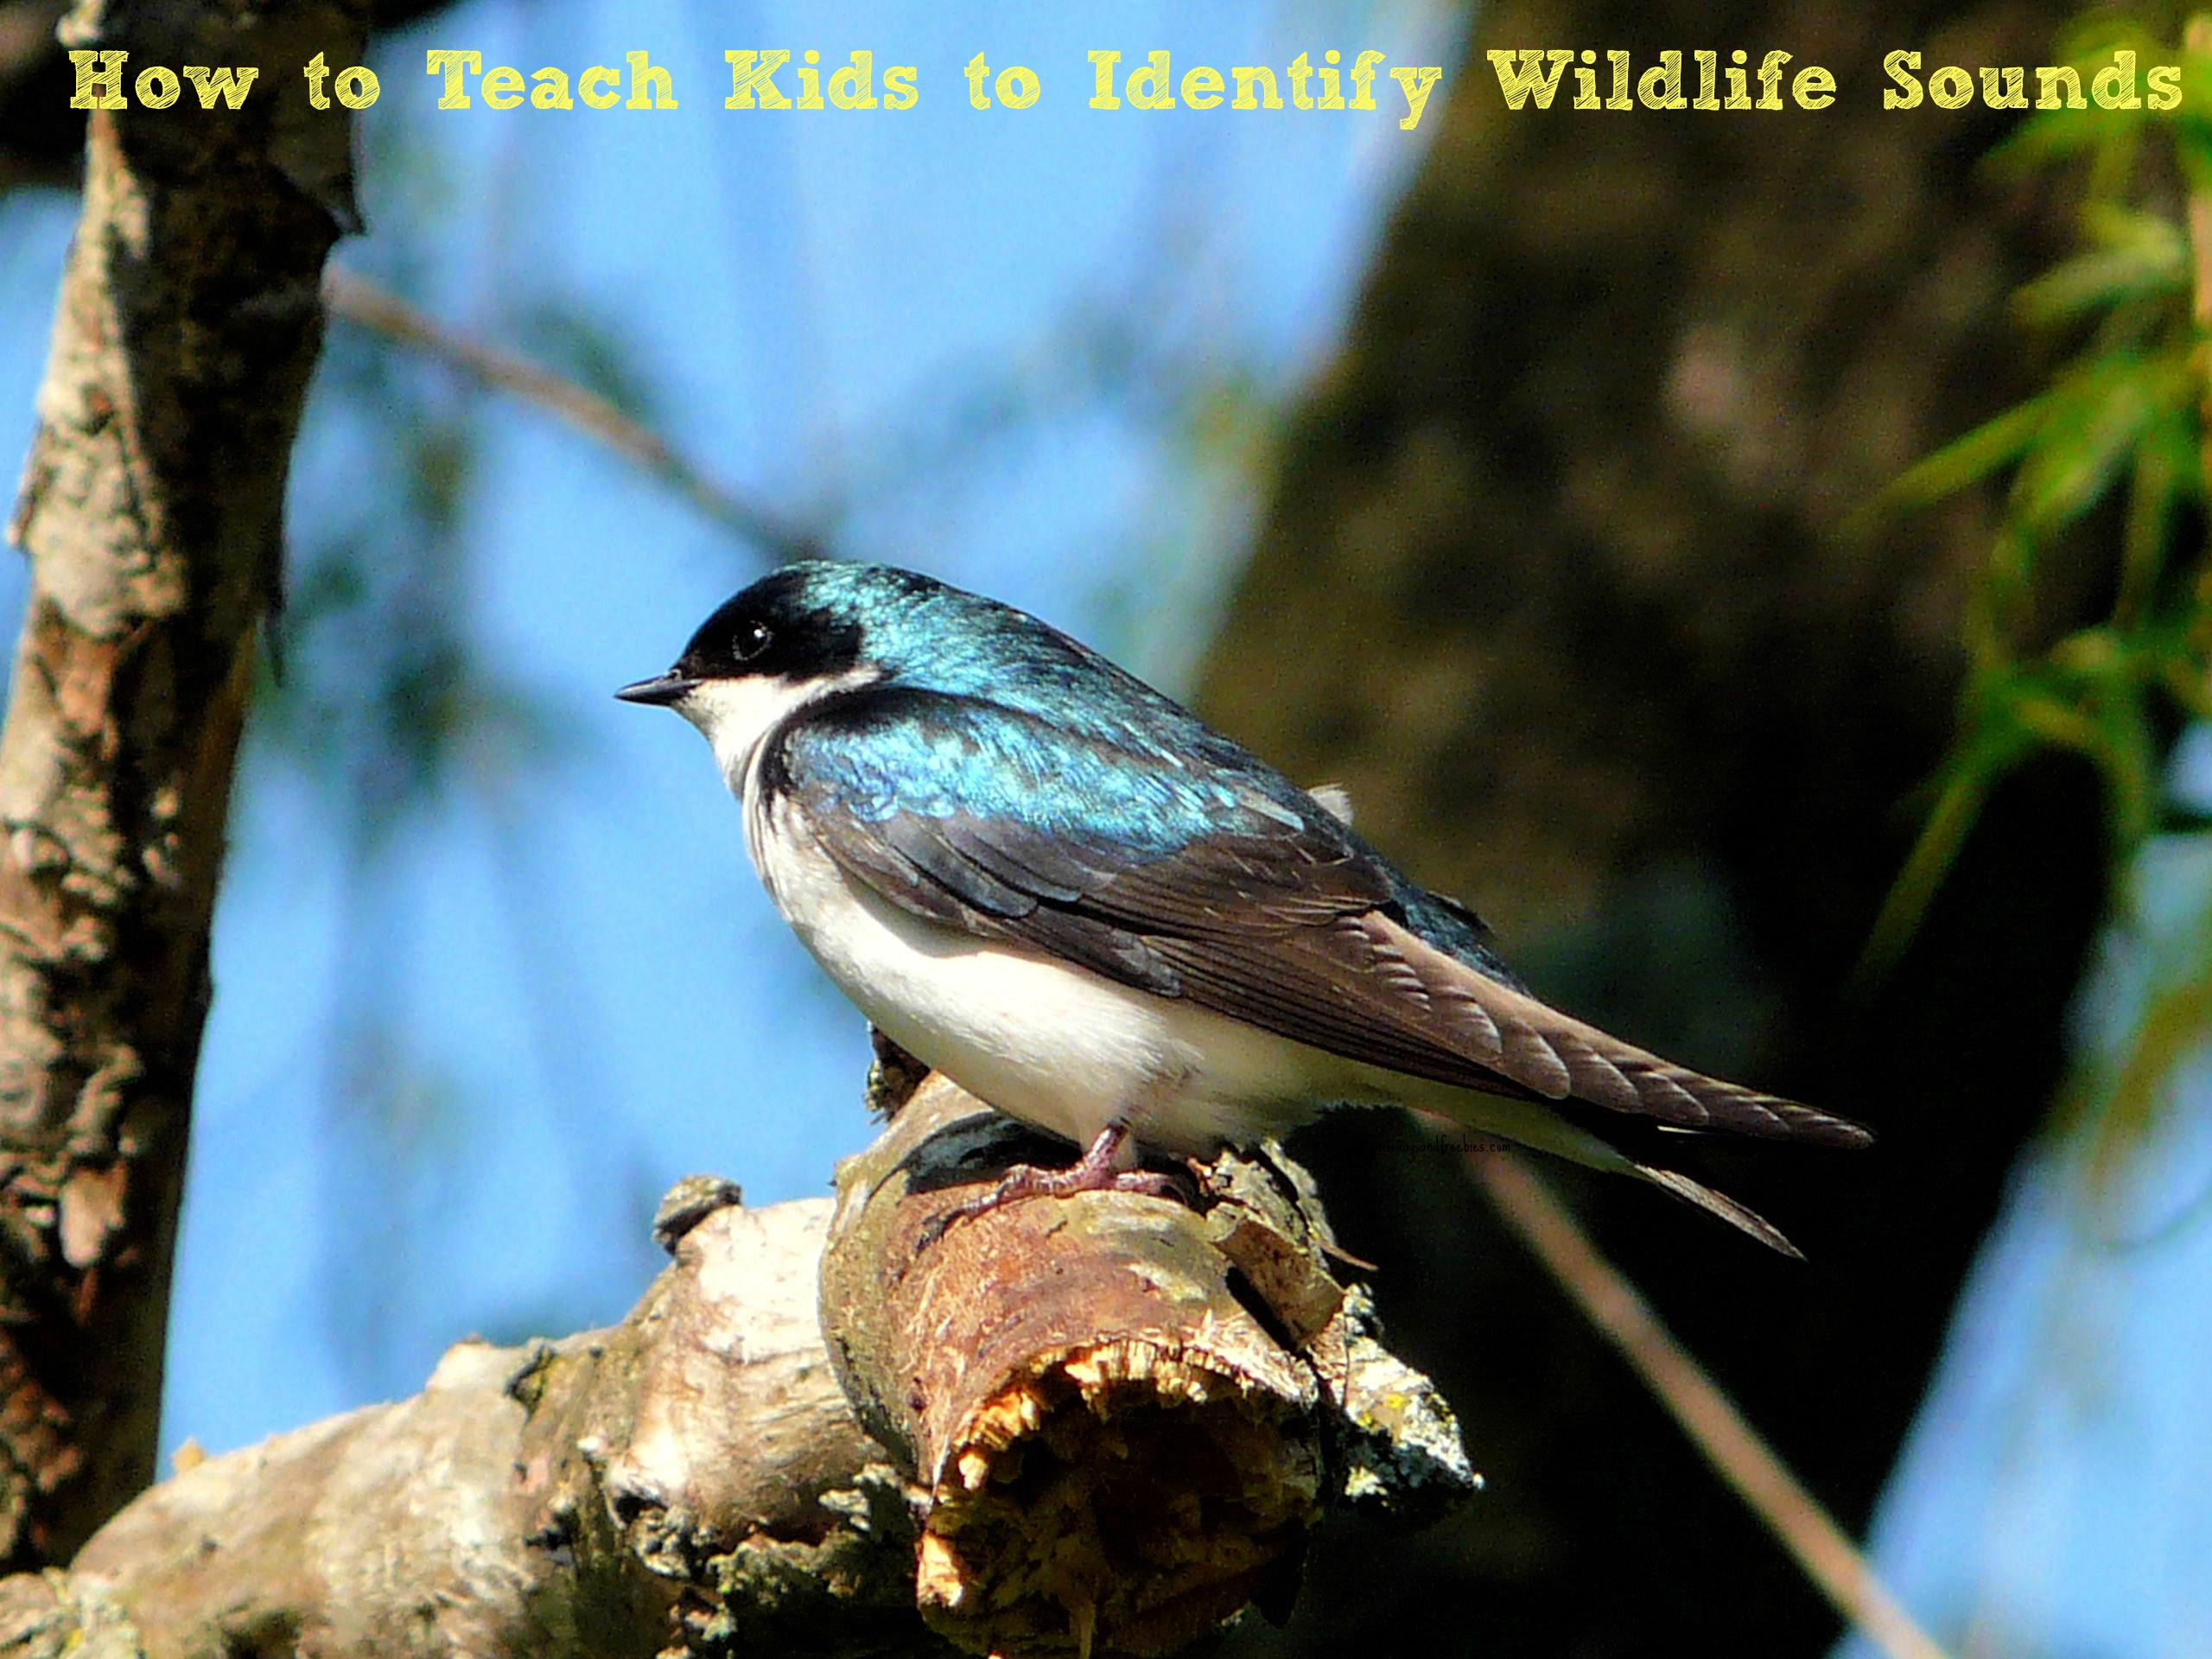 How to Teach Kids to Identify Wildlife Sounds